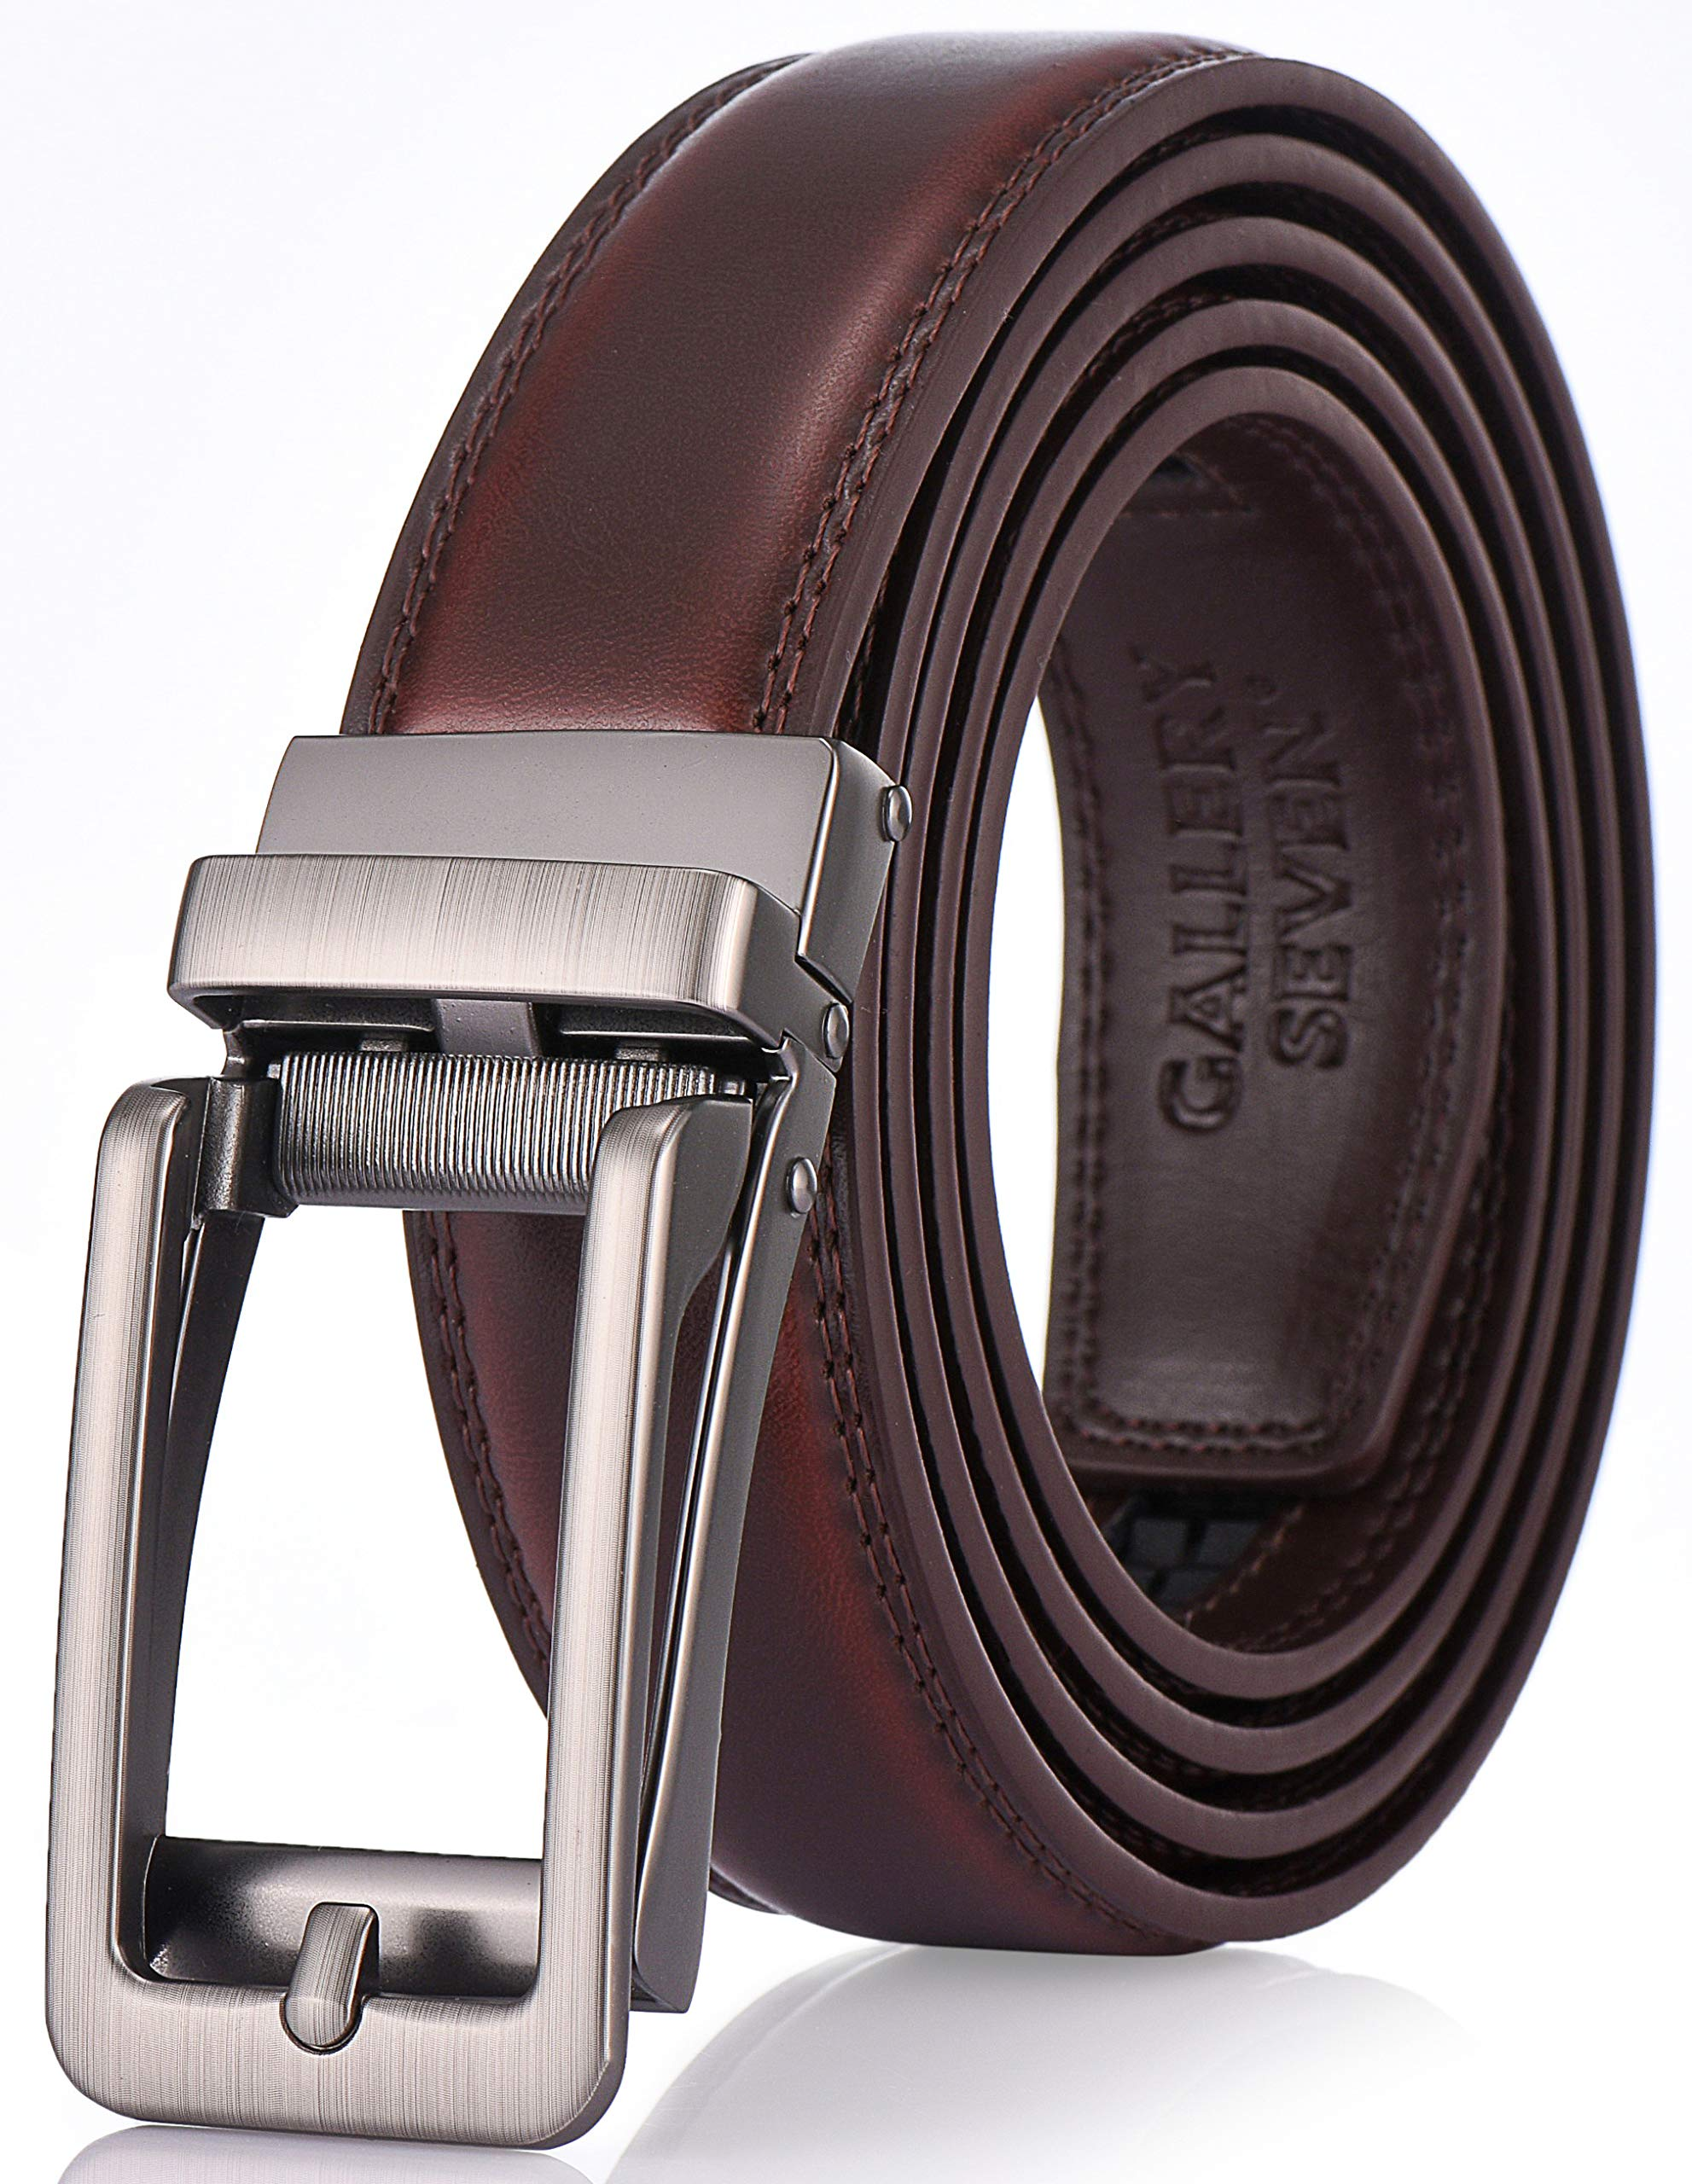 Gallery Seven Leather RatchetBelt For Men - Adjustable Click Belt - Casual Dress Belt - Mahogany - Style 17 - Adjustable from 38'' to 54'' Waist